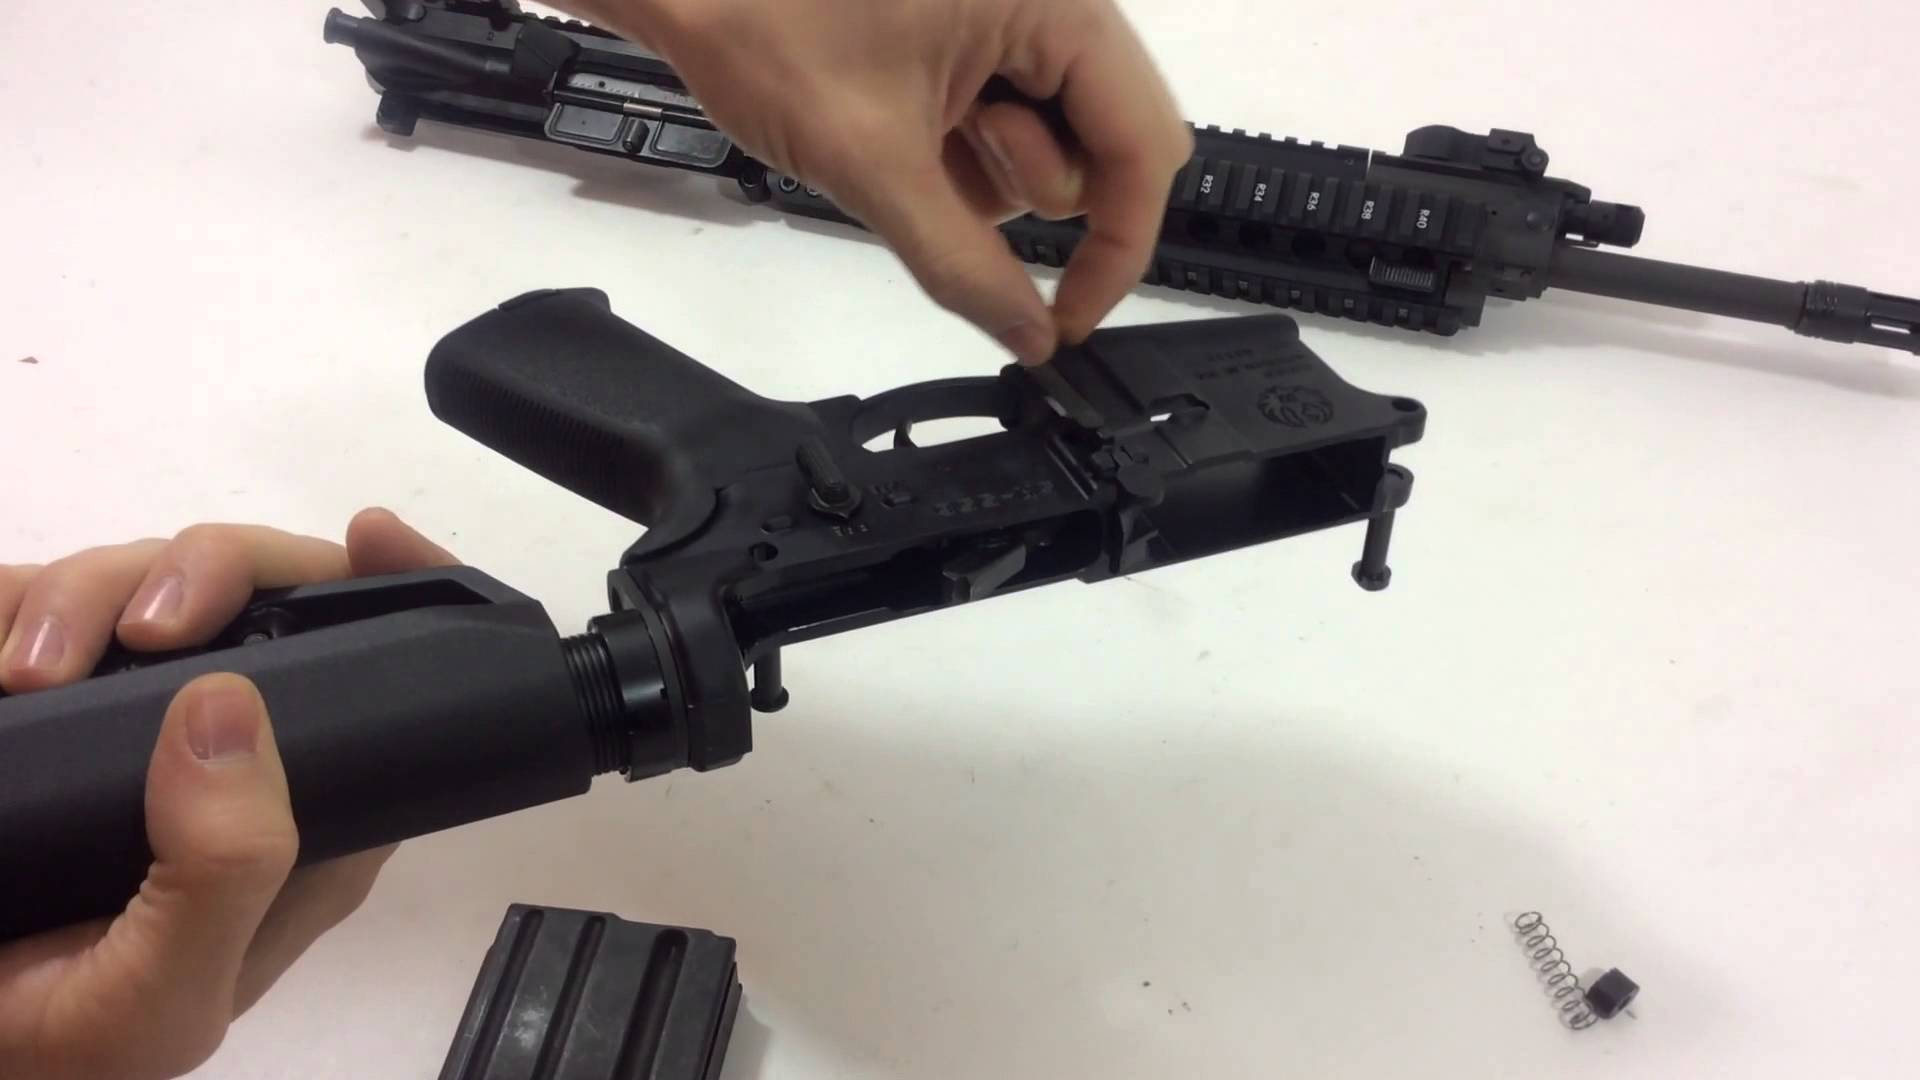 How to install a bullet button on an AR-15 Rifle (Ruger SR-556TD TAKEDOWN MODEL 05901)